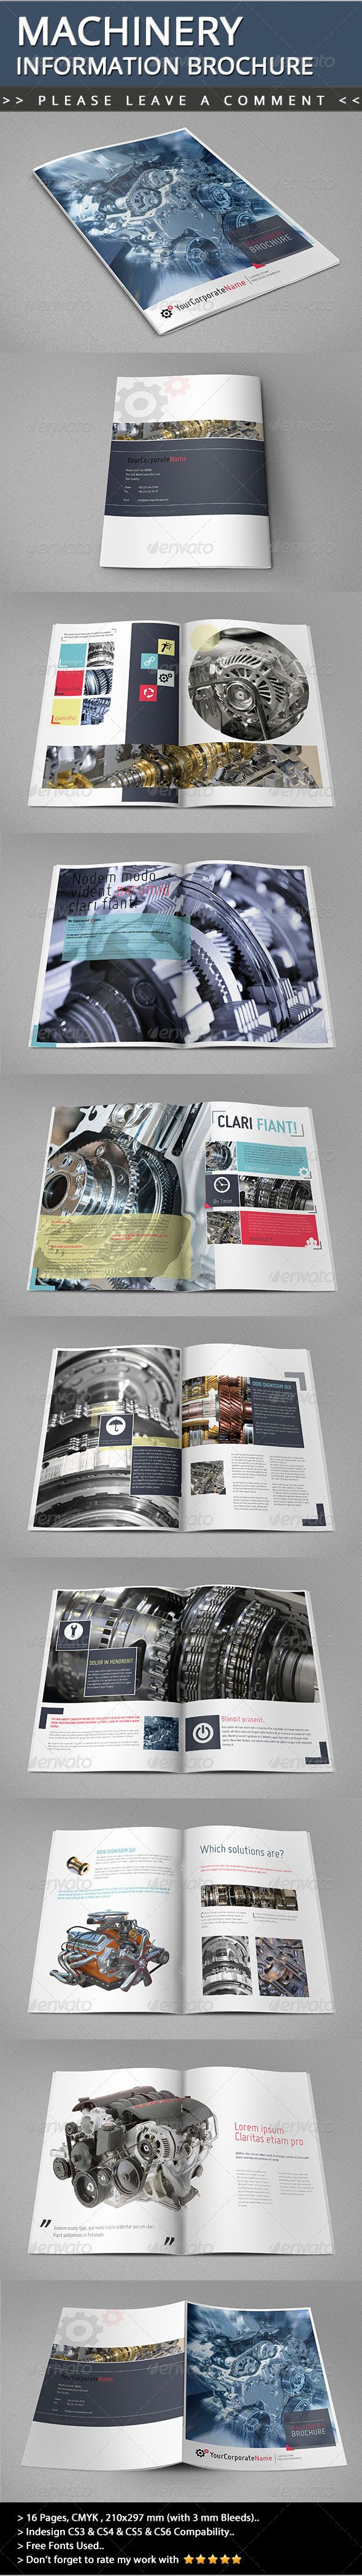 Machinery Information Brochure  #GraphicRiver        Description New style , clean and cool Machinery Information Brochure Template for all designers and all companies that need this style.. Summary 16 pages  210×297 mm with 3mm bleed  300 dpi  CMYK  CS3 & CS4 & CS5 & CS6 CompabilityFiles Included InDesign CS3,CS4,CS5 and CS6 files ;